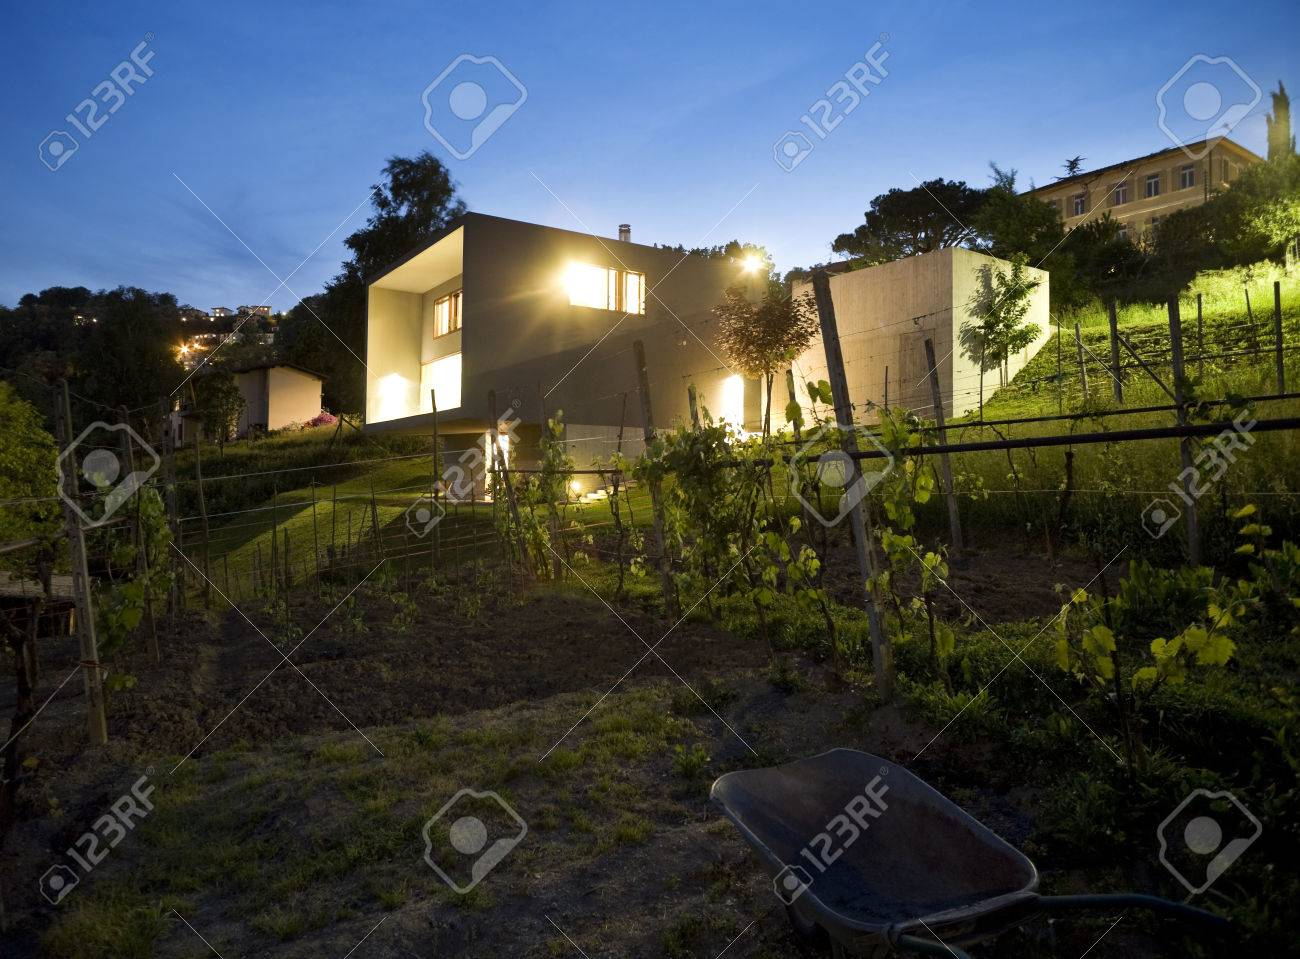 Modern house surrounded by nature outdoors stock photo 23570621